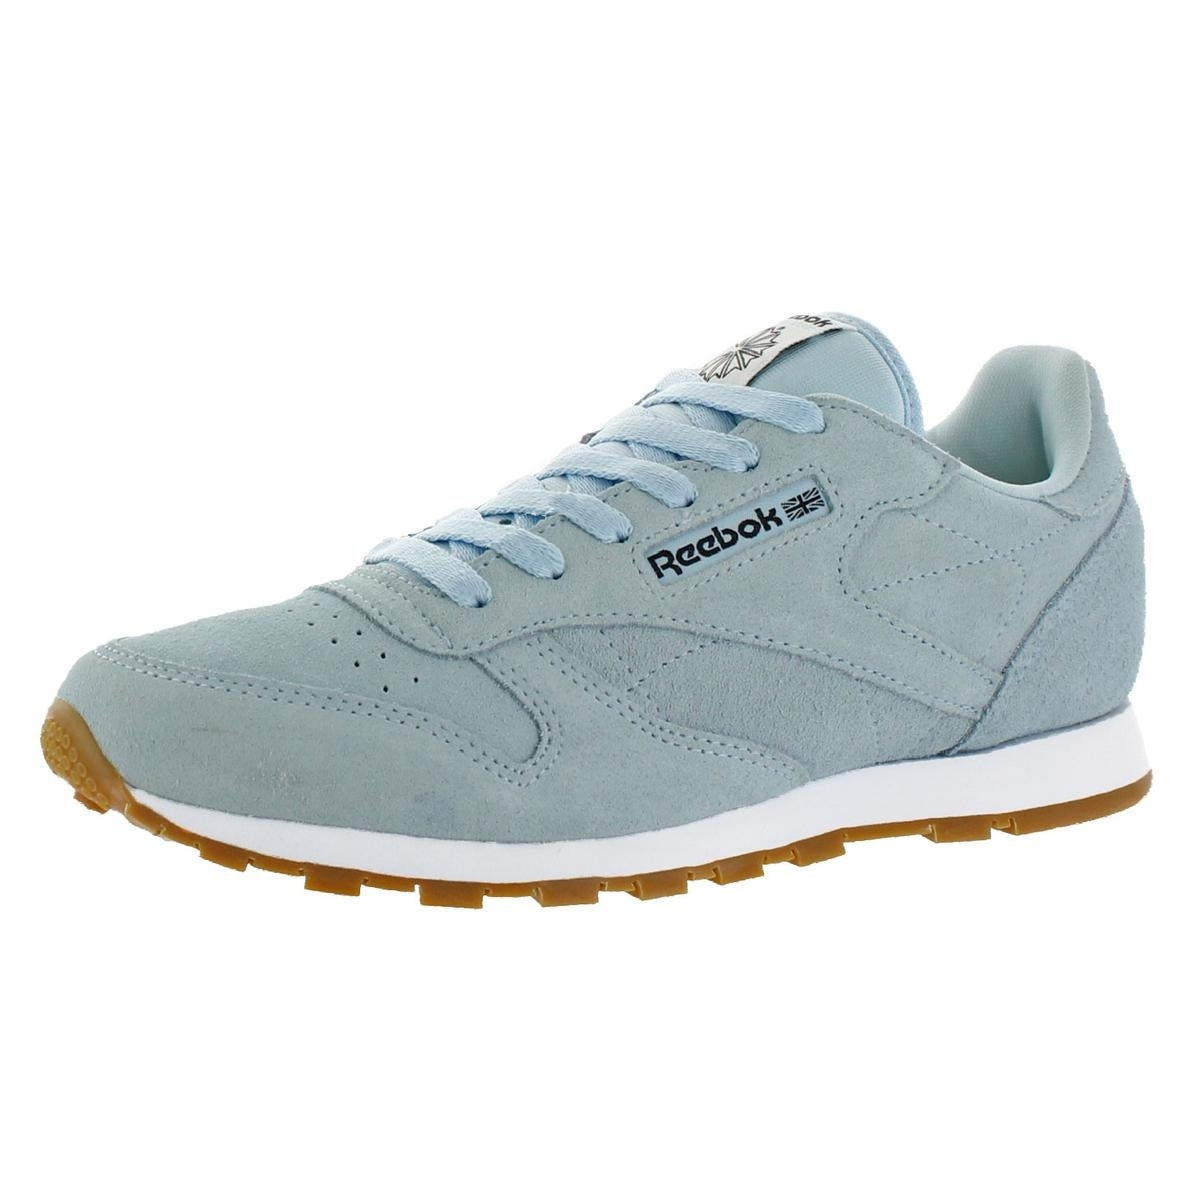 cbd1e2f2e7a6 Shop Reebok Girls Classic Leather Pastels Running Shoes Big Kid Non Marking  - Free Shipping On Orders Over  45 - Overstock - 22680113